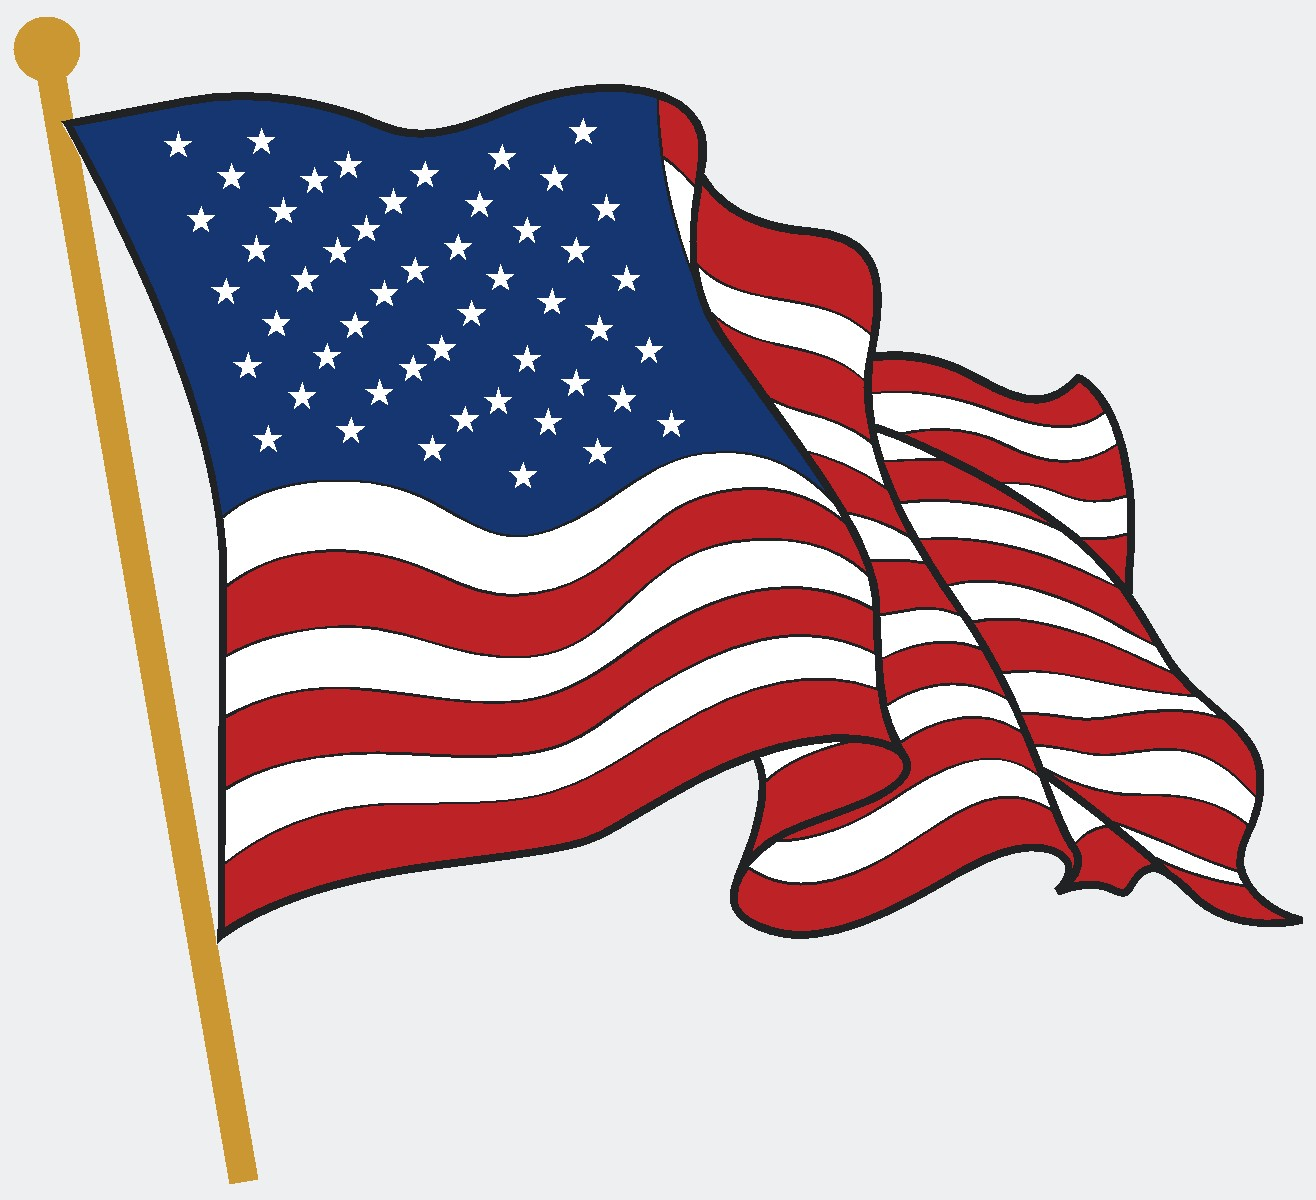 American flag usa clip art free vector for download 2.